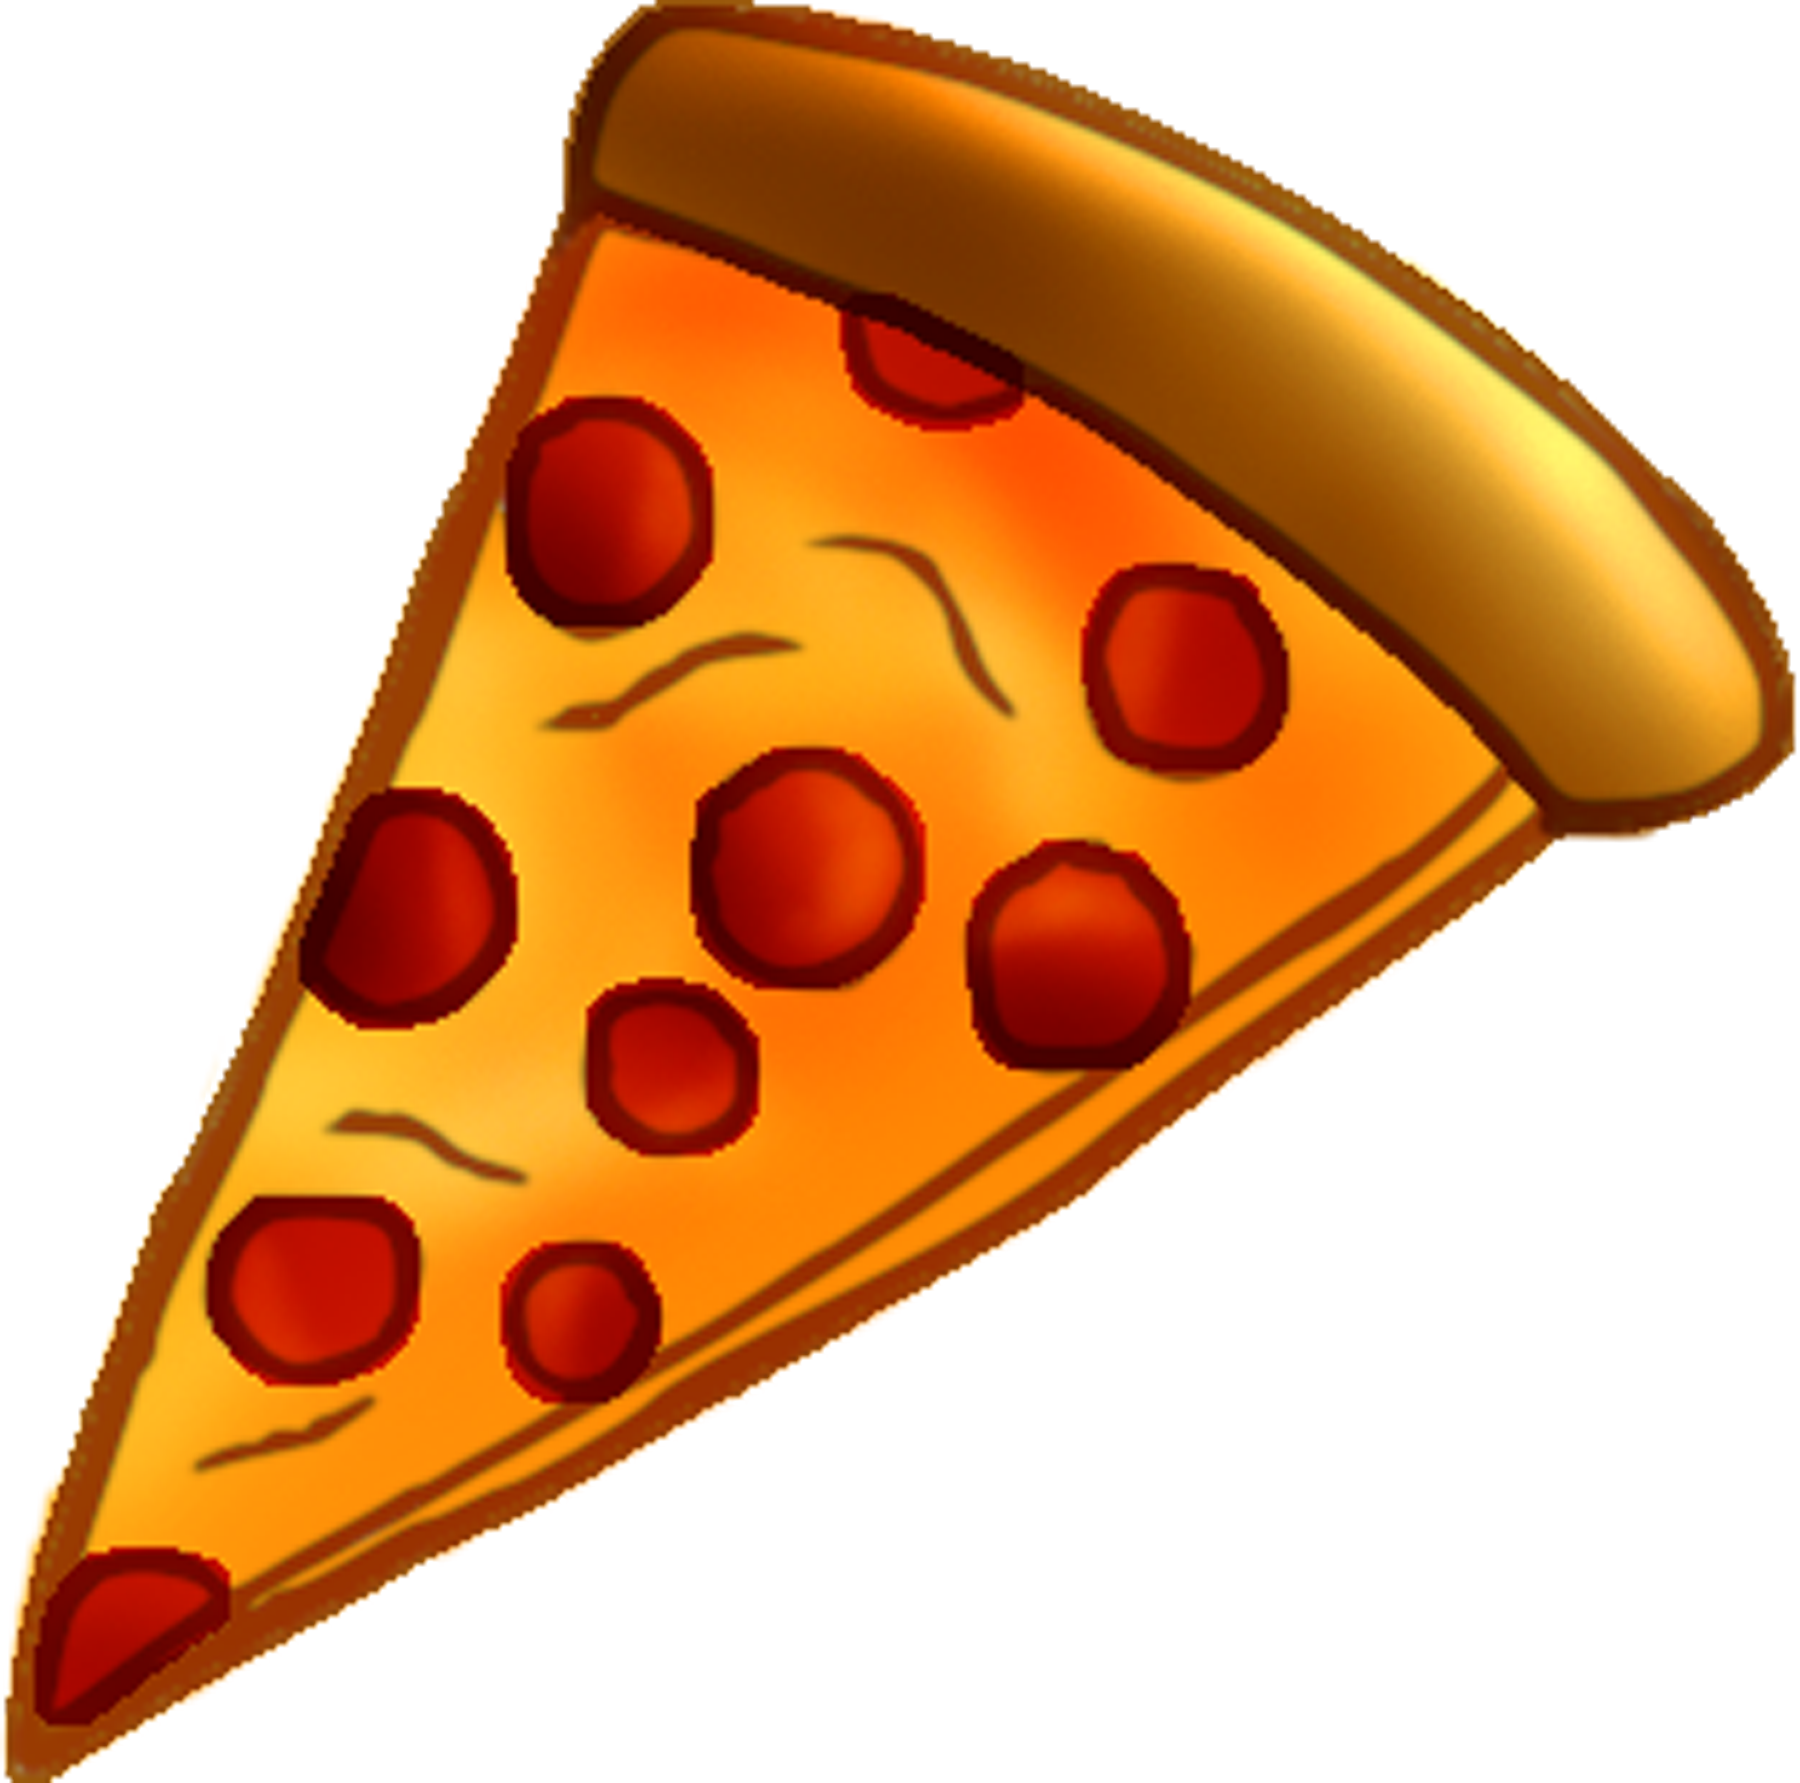 1800x1783 Pizza Clip Art Free Download Free Clipart Images